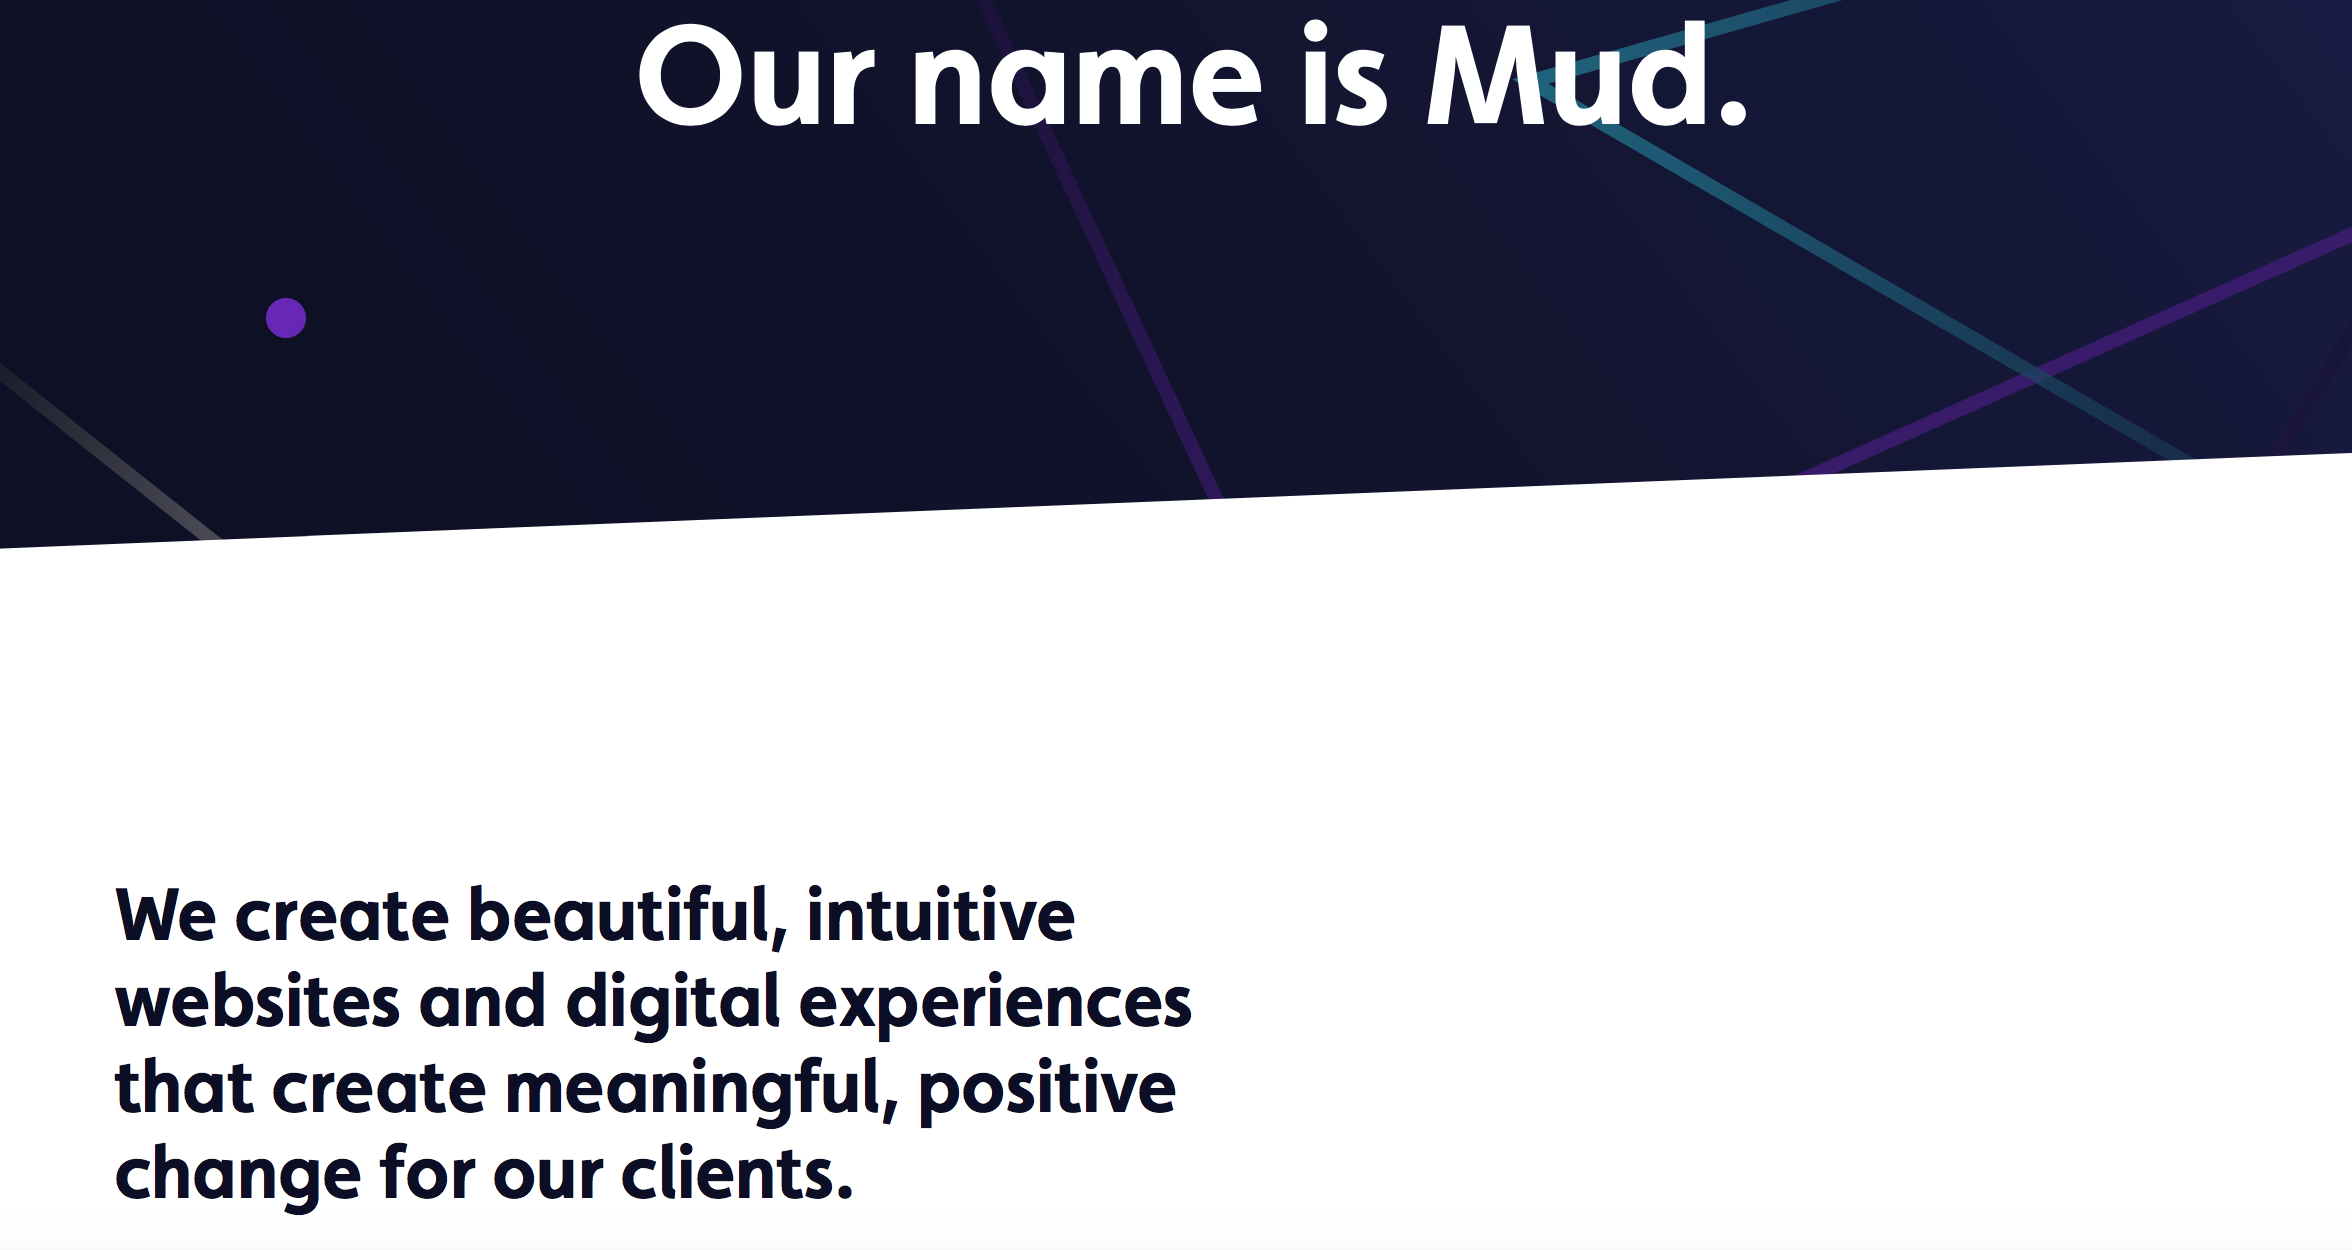 Improve your home page - Mud's home page with clear explanation